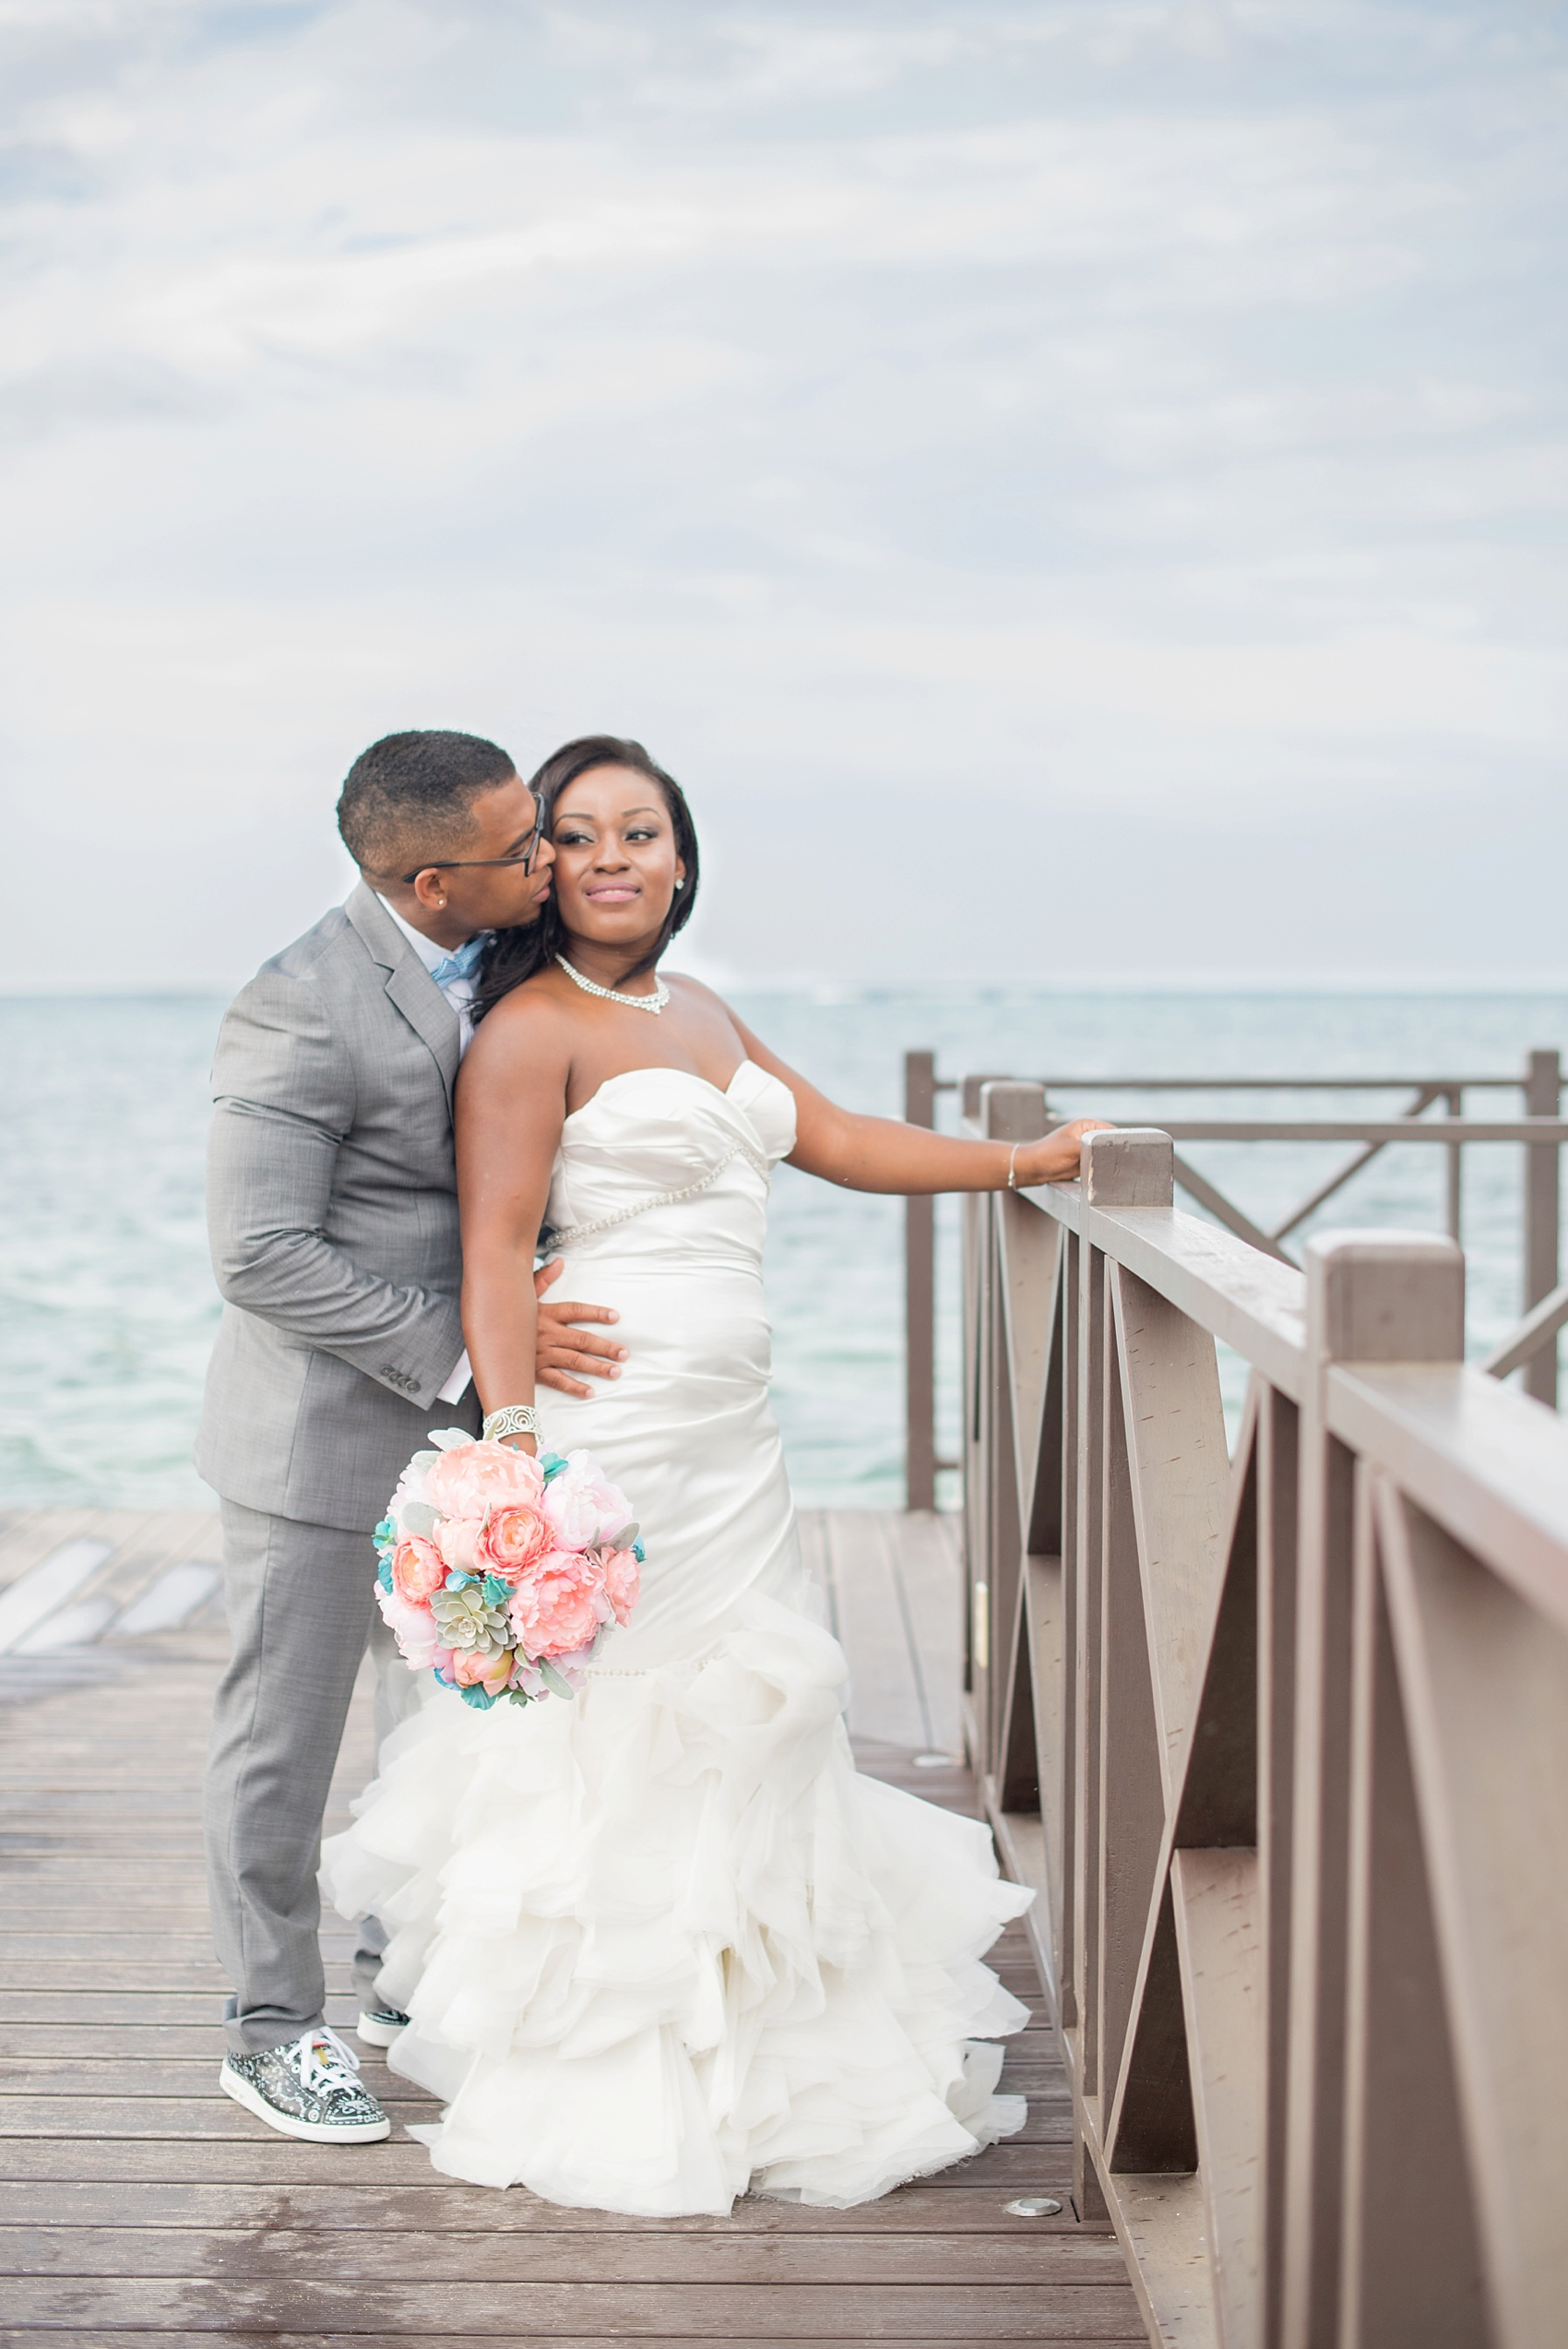 Iberostar Jamaica wedding photos, bride and groom. Images by Mikkel Paige Photography.